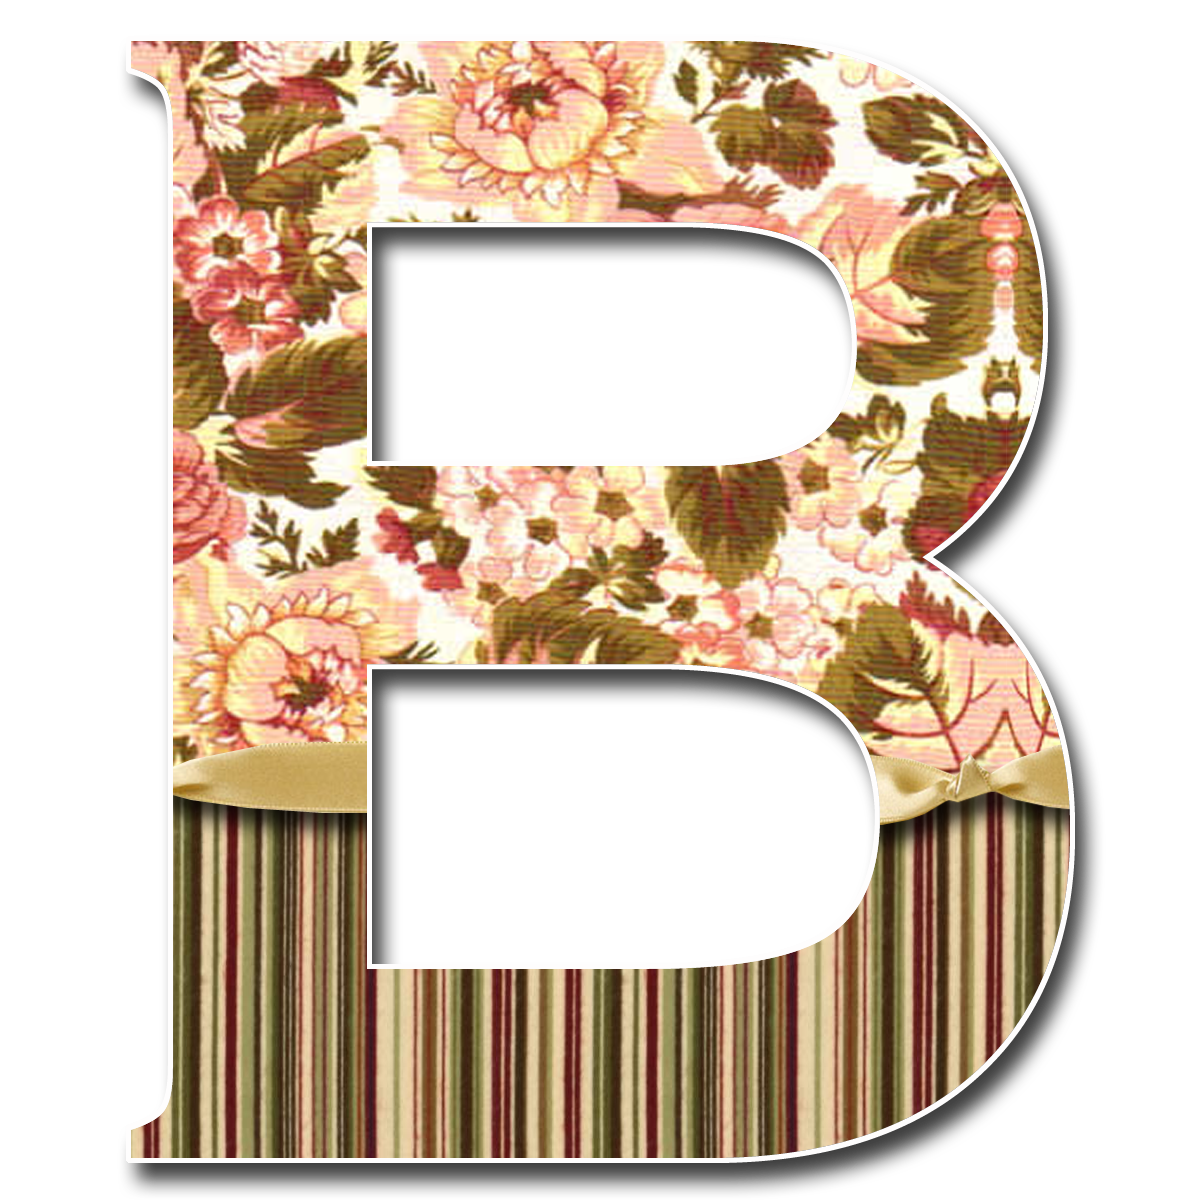 How to scrapbook letters - Capital Letter B Tan Stripe Png 1 200 1 200 P Xeles